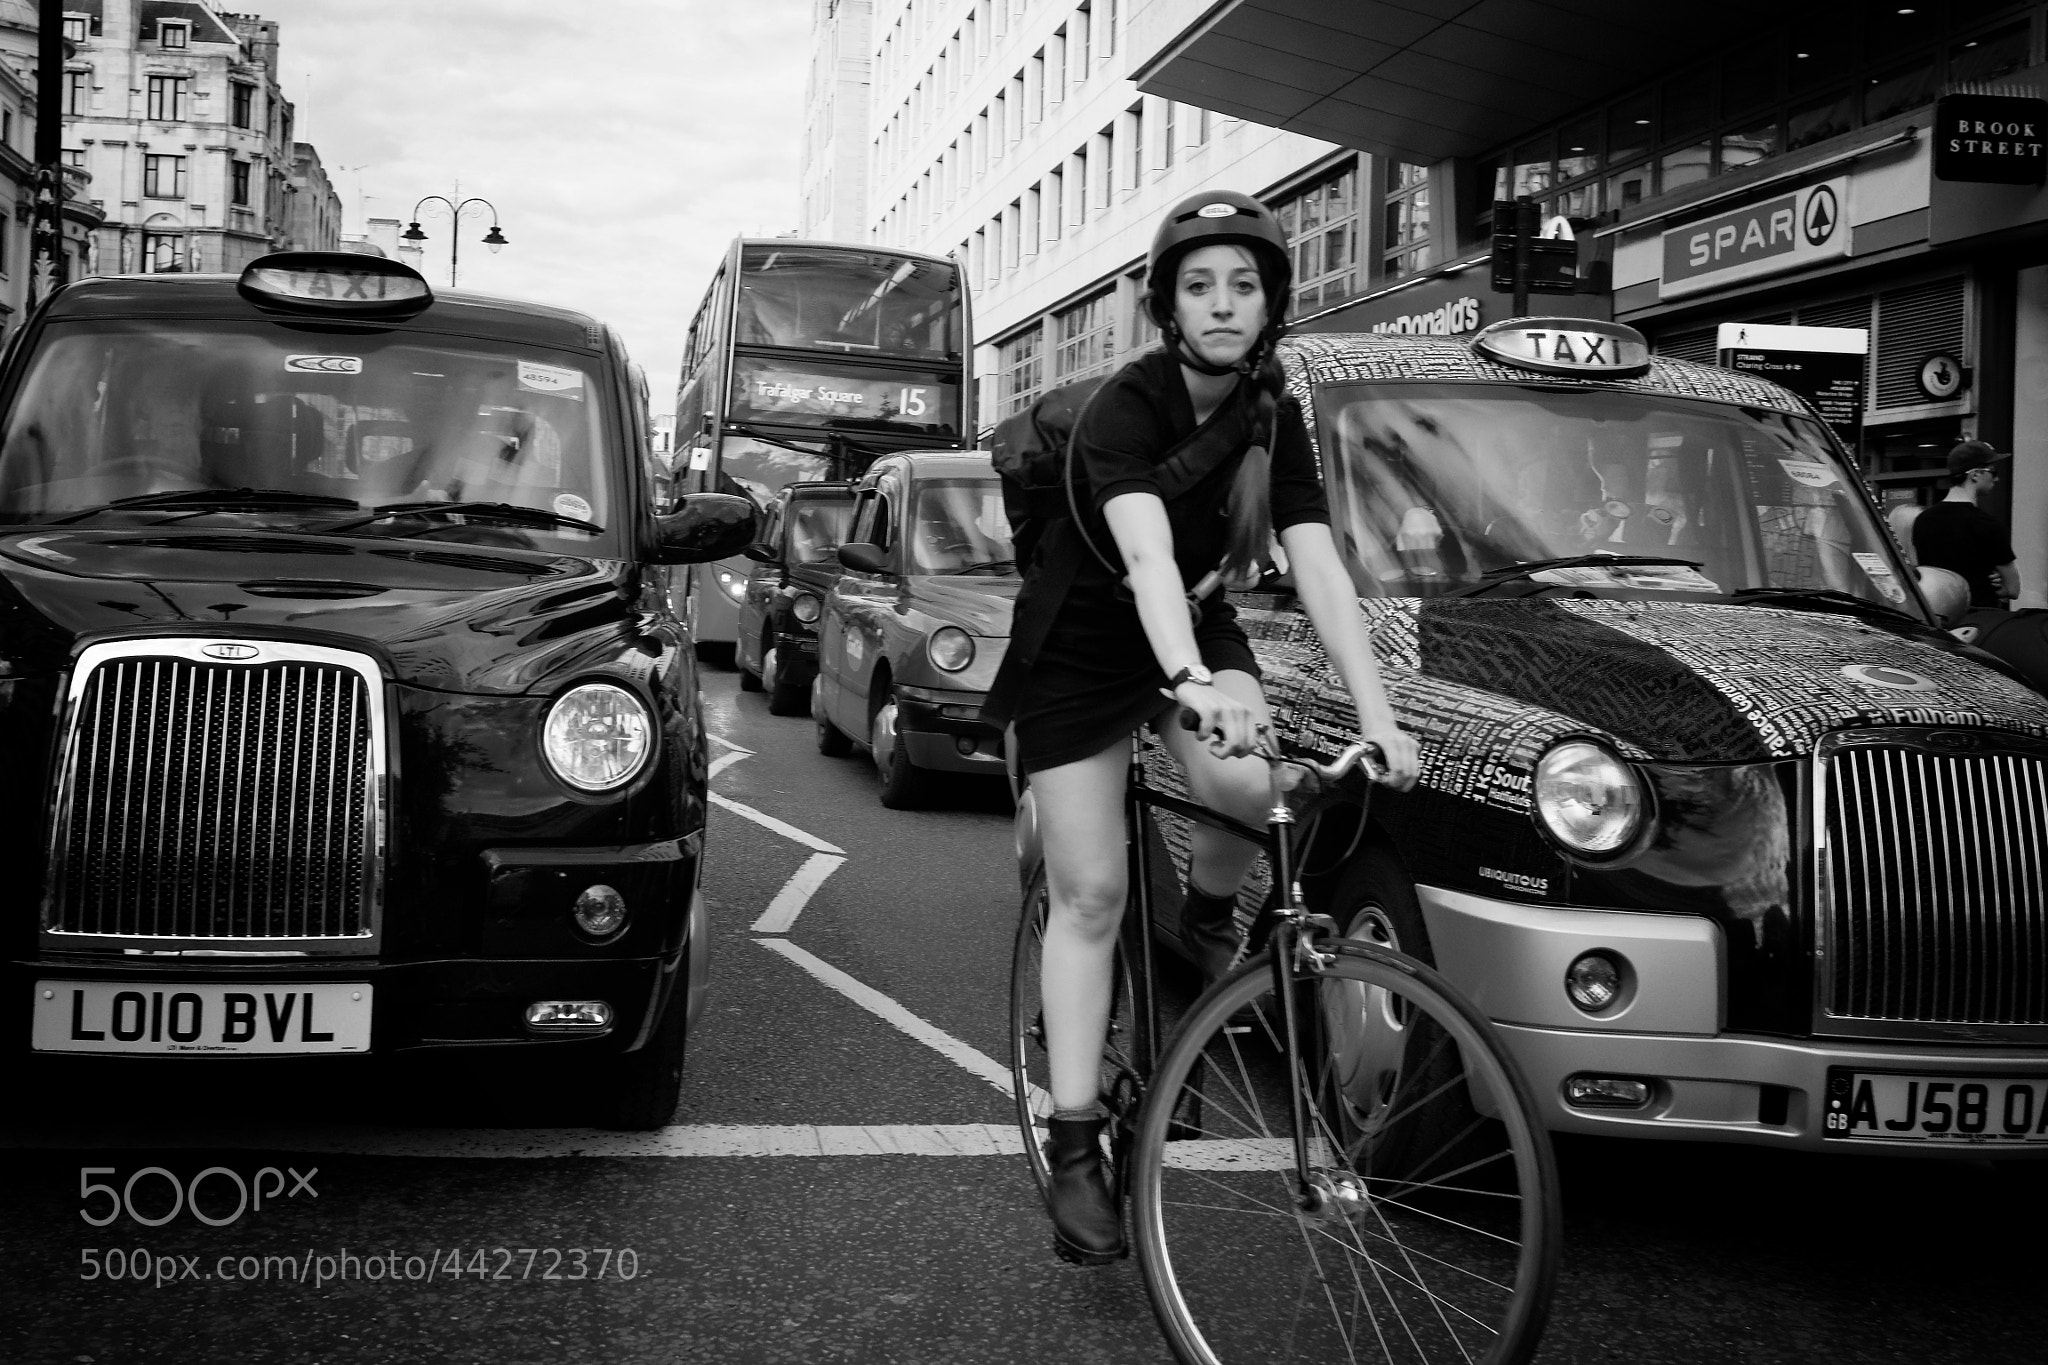 Photograph this is london by laurent aublé on 500px